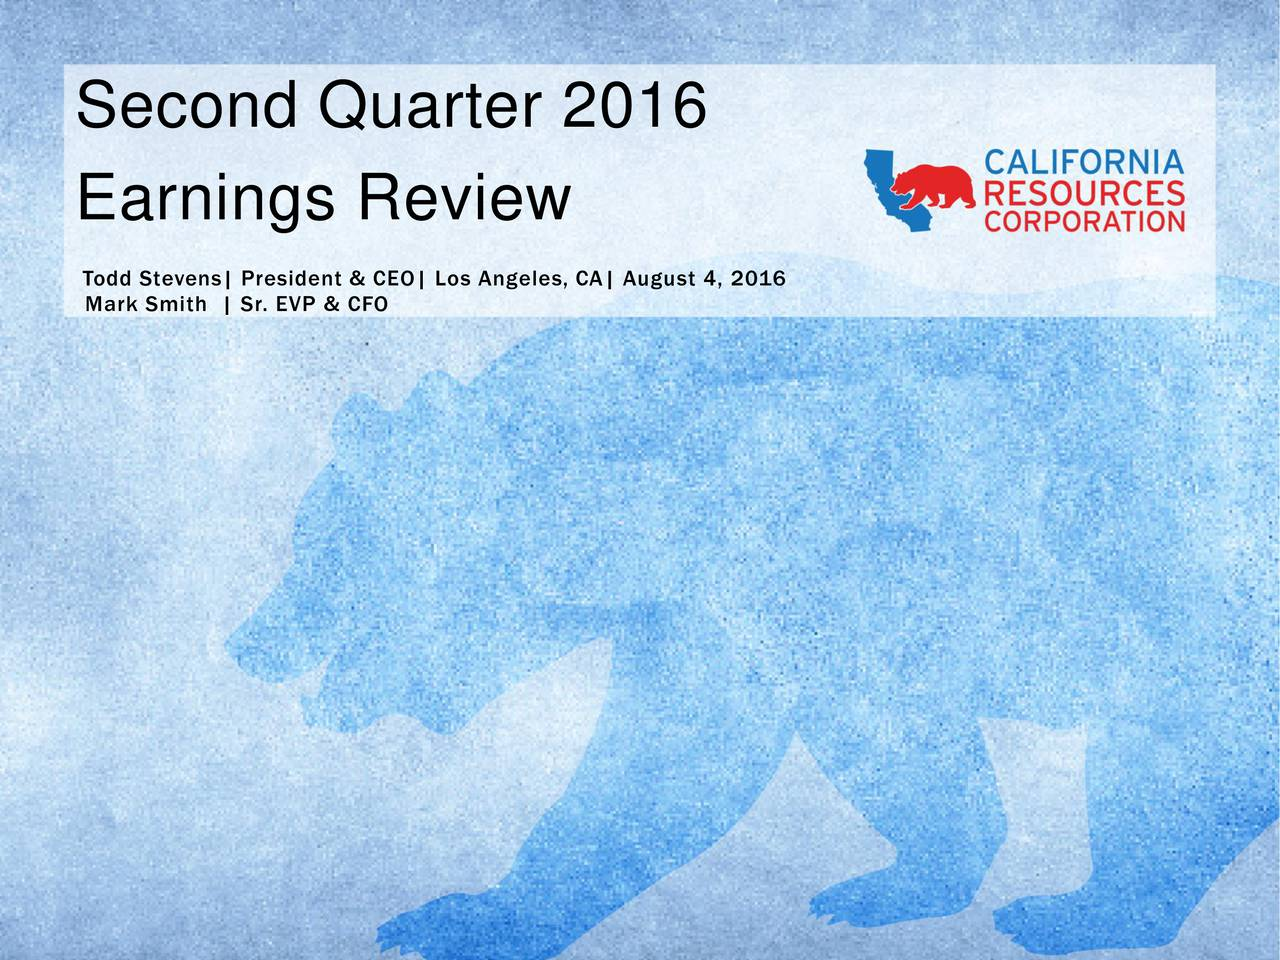 Earnings Review Mark Smith | Sr. EVP & CFOCEO| Los Angeles, CA| August 4, 2016